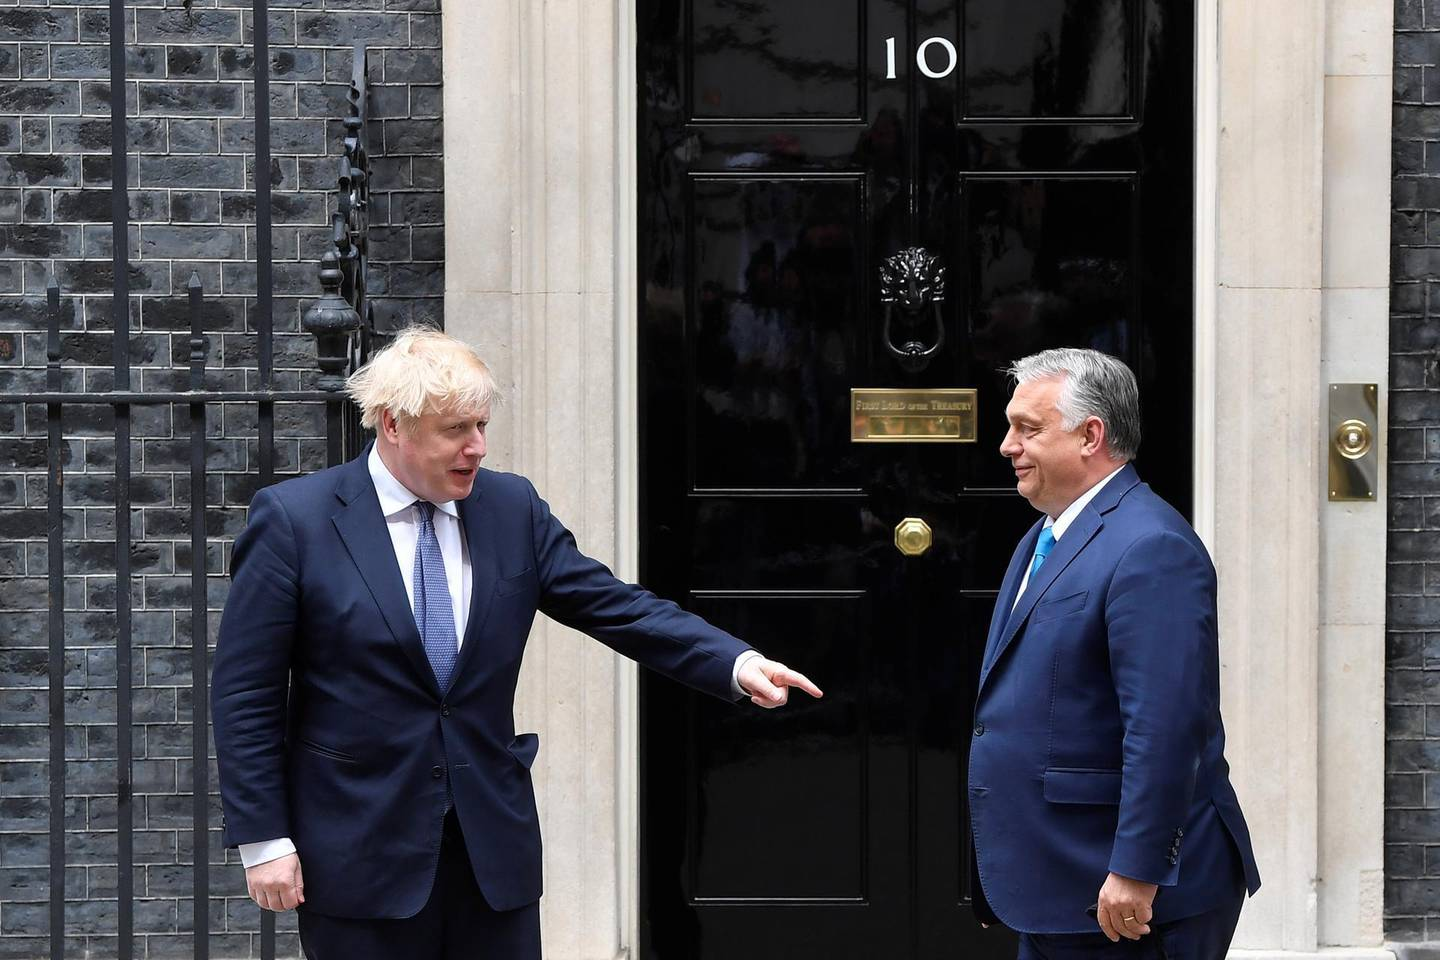 Britain's Prime Minister Boris Johnson meets Hungary's Prime Minister Viktor Orban at Downing Street in London, Britain May 28, 2021. REUTERS/Toby Melville